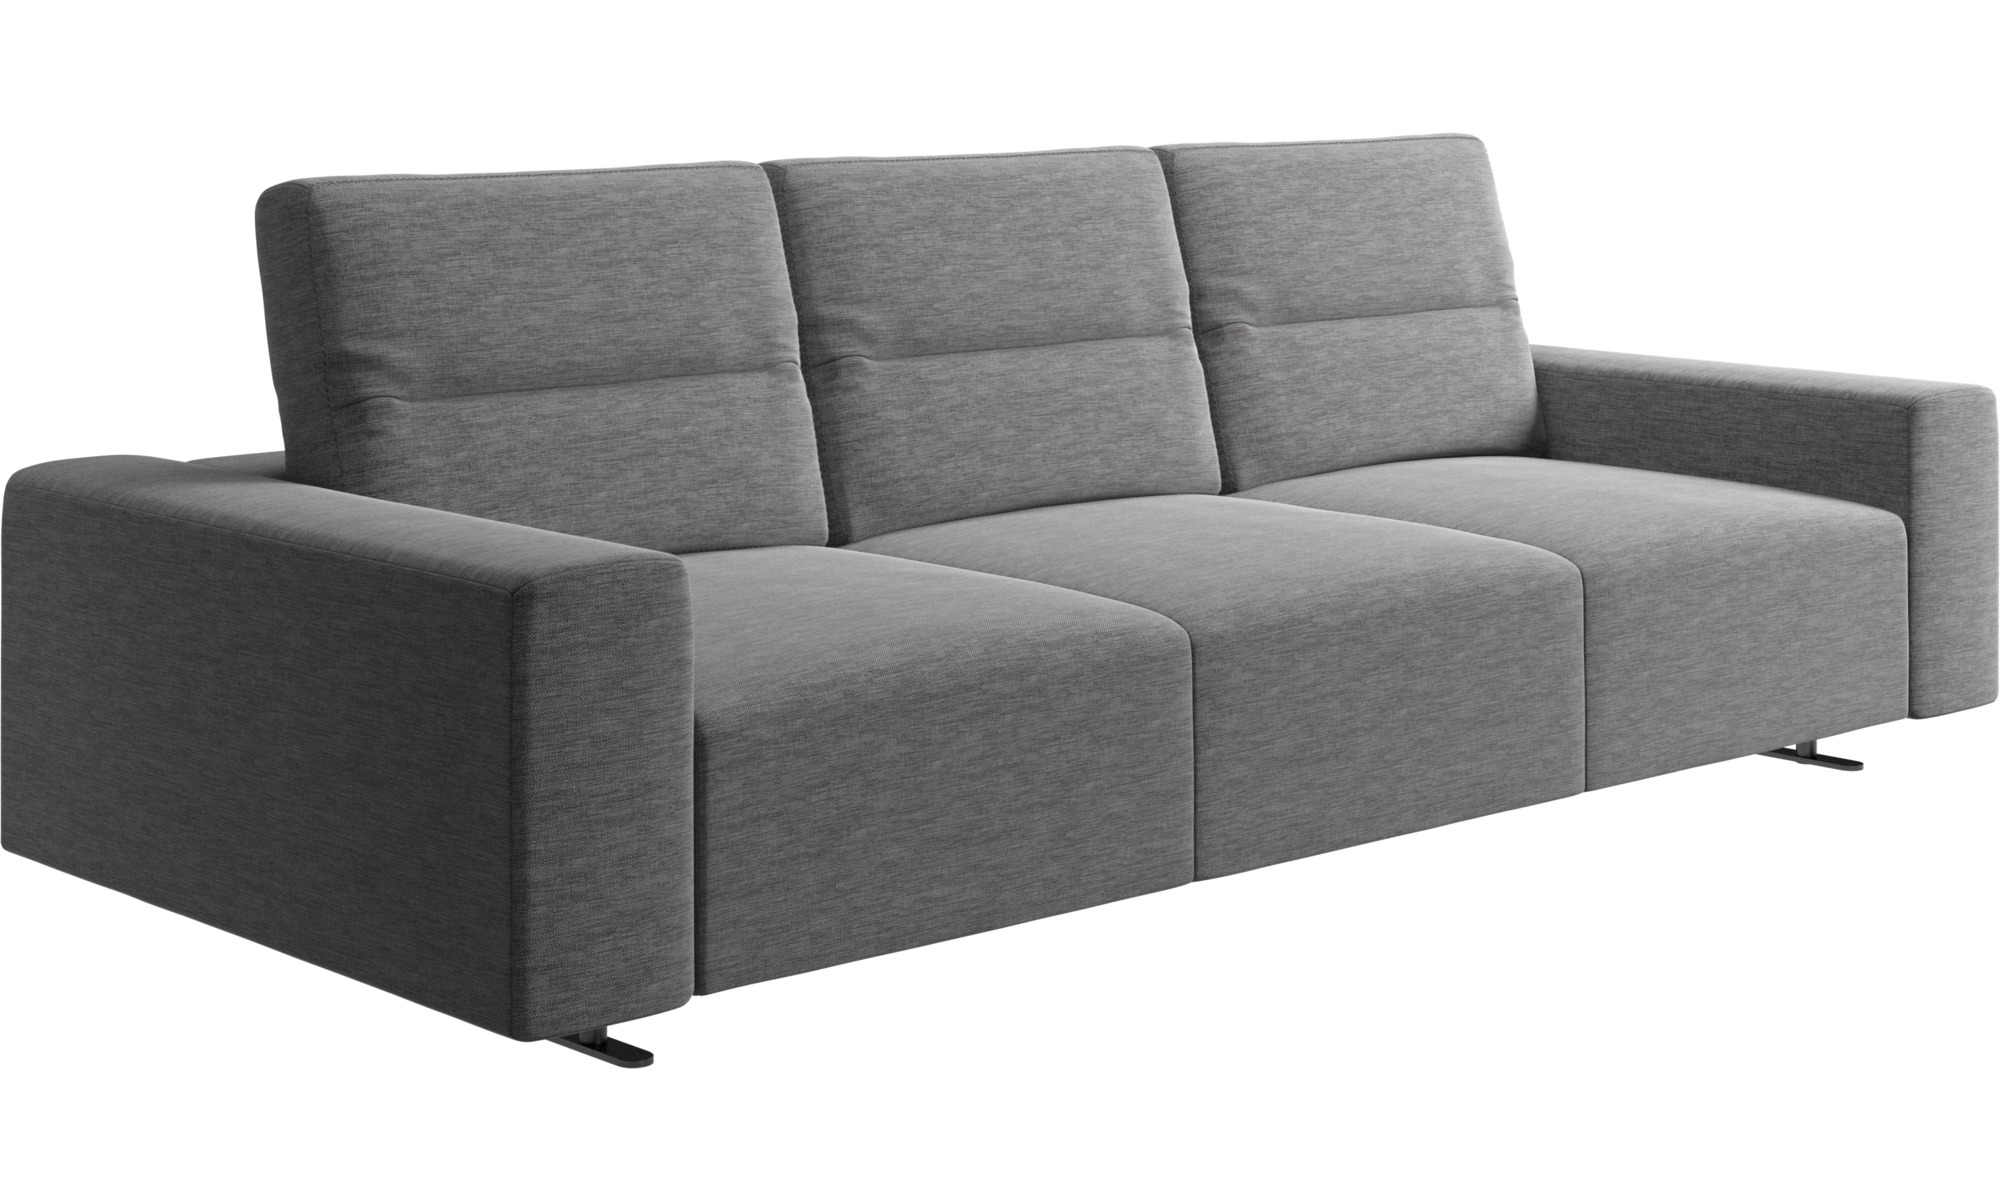 3 sitzer sofas hampton sofa mit verstellbarer r ckenlehne boconcept. Black Bedroom Furniture Sets. Home Design Ideas